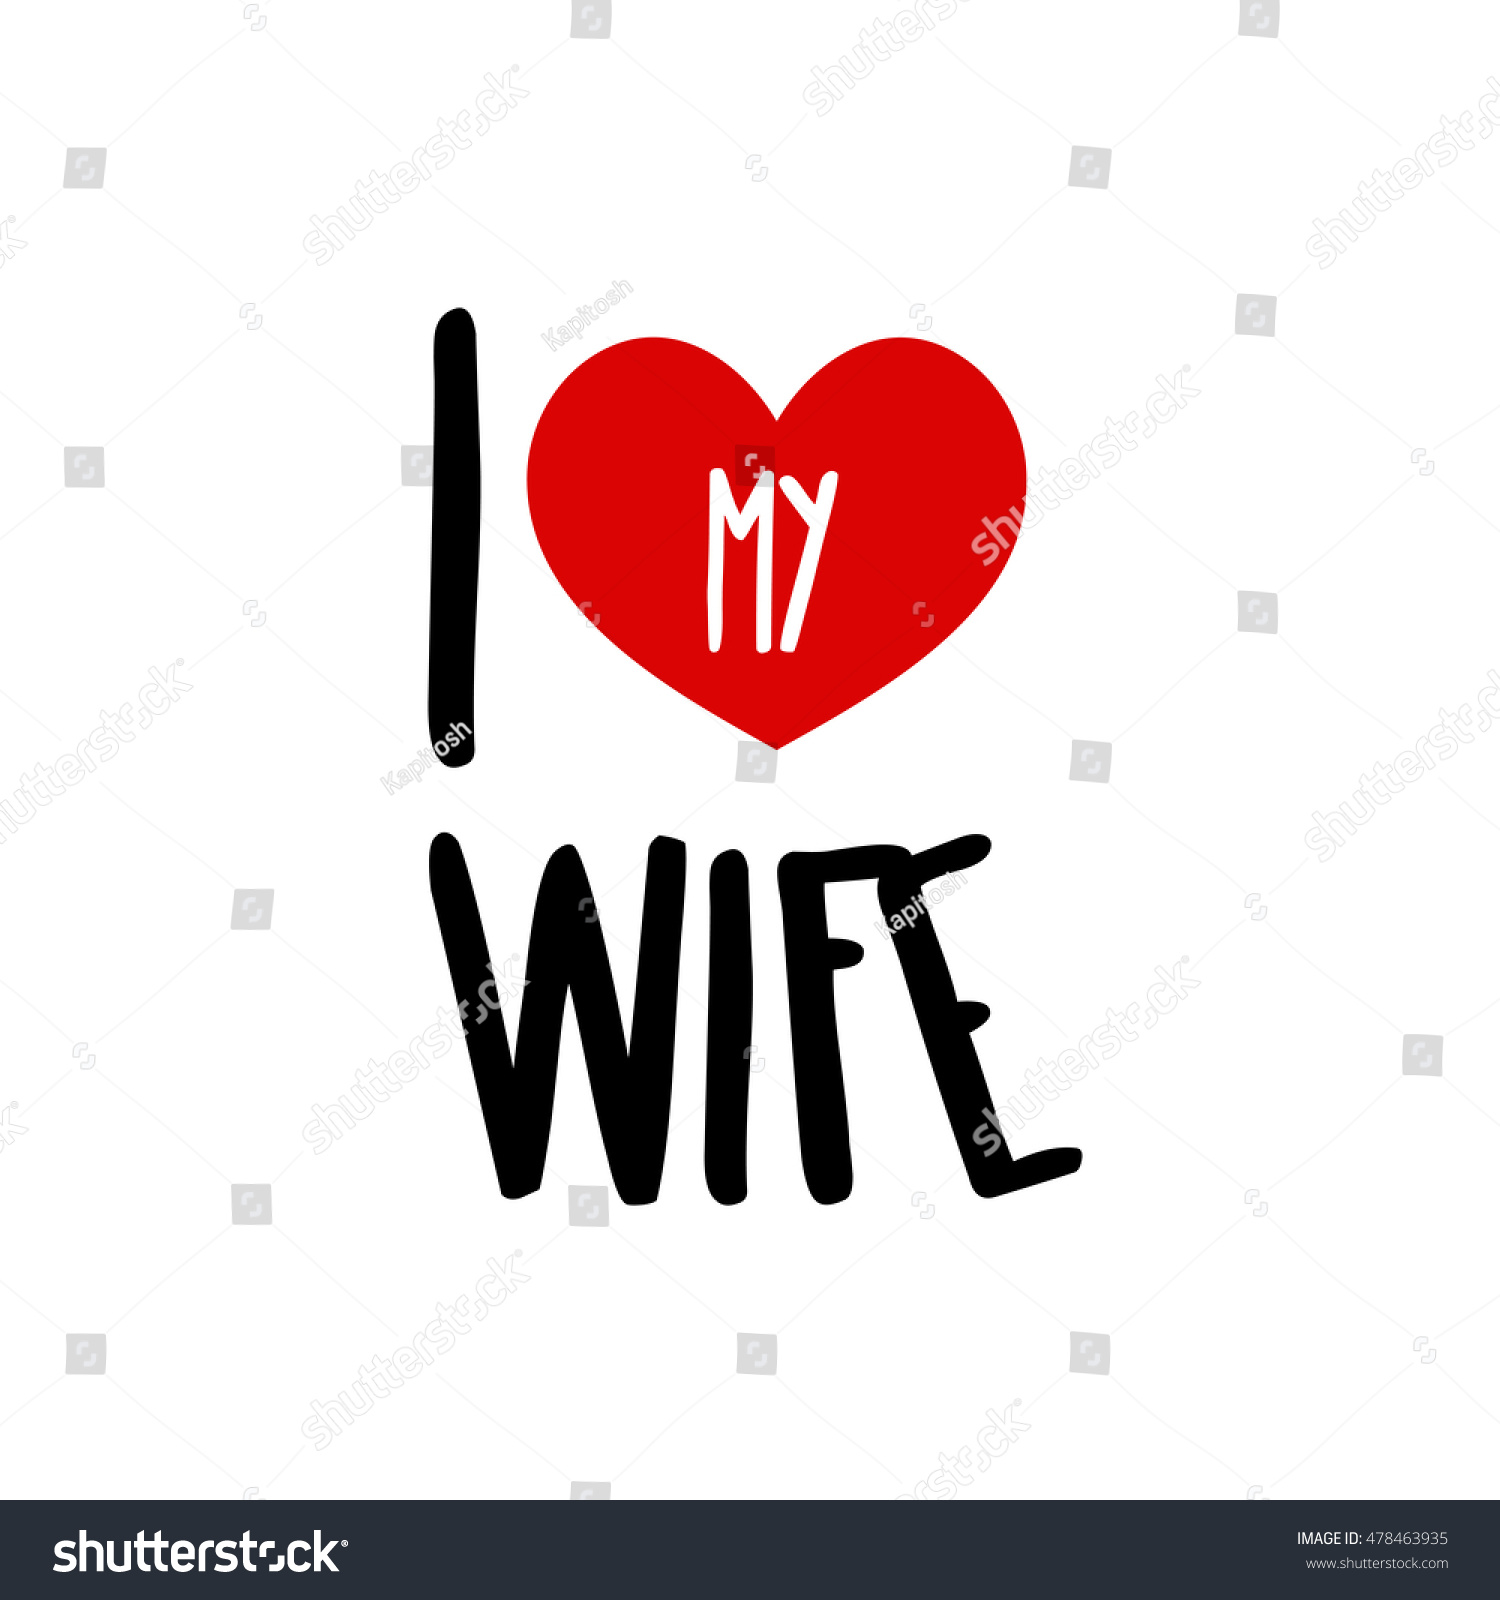 Love my wife family red heart stock vector 478463935 shutterstock i love my wife family red heart simple symbol white background calligraphic inscription buycottarizona Image collections